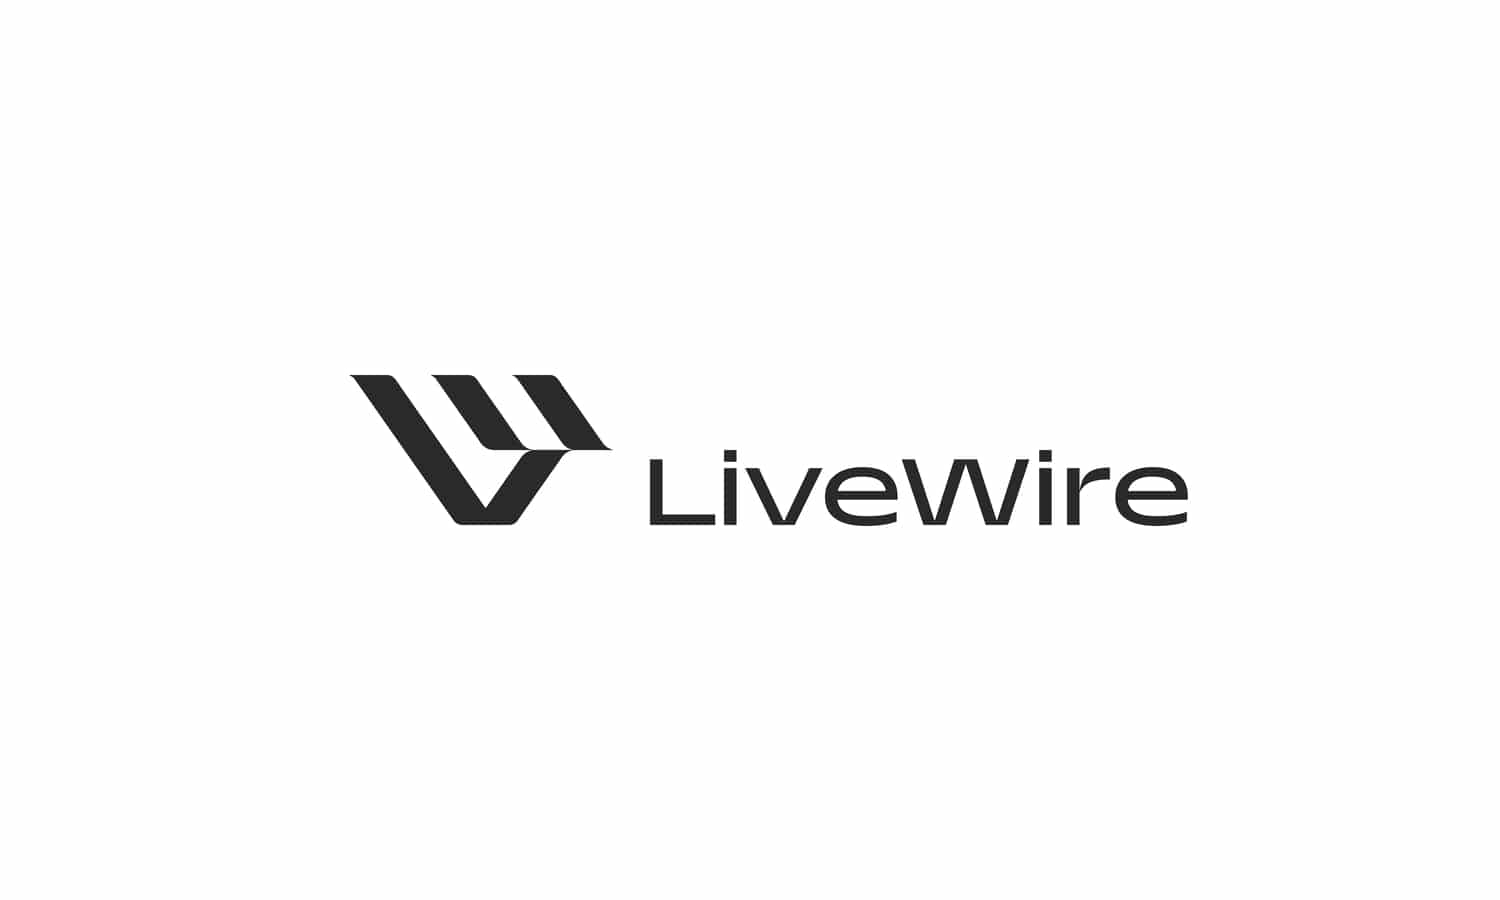 Harley-Davidson launches LiveWire, the electric motorcycle brand